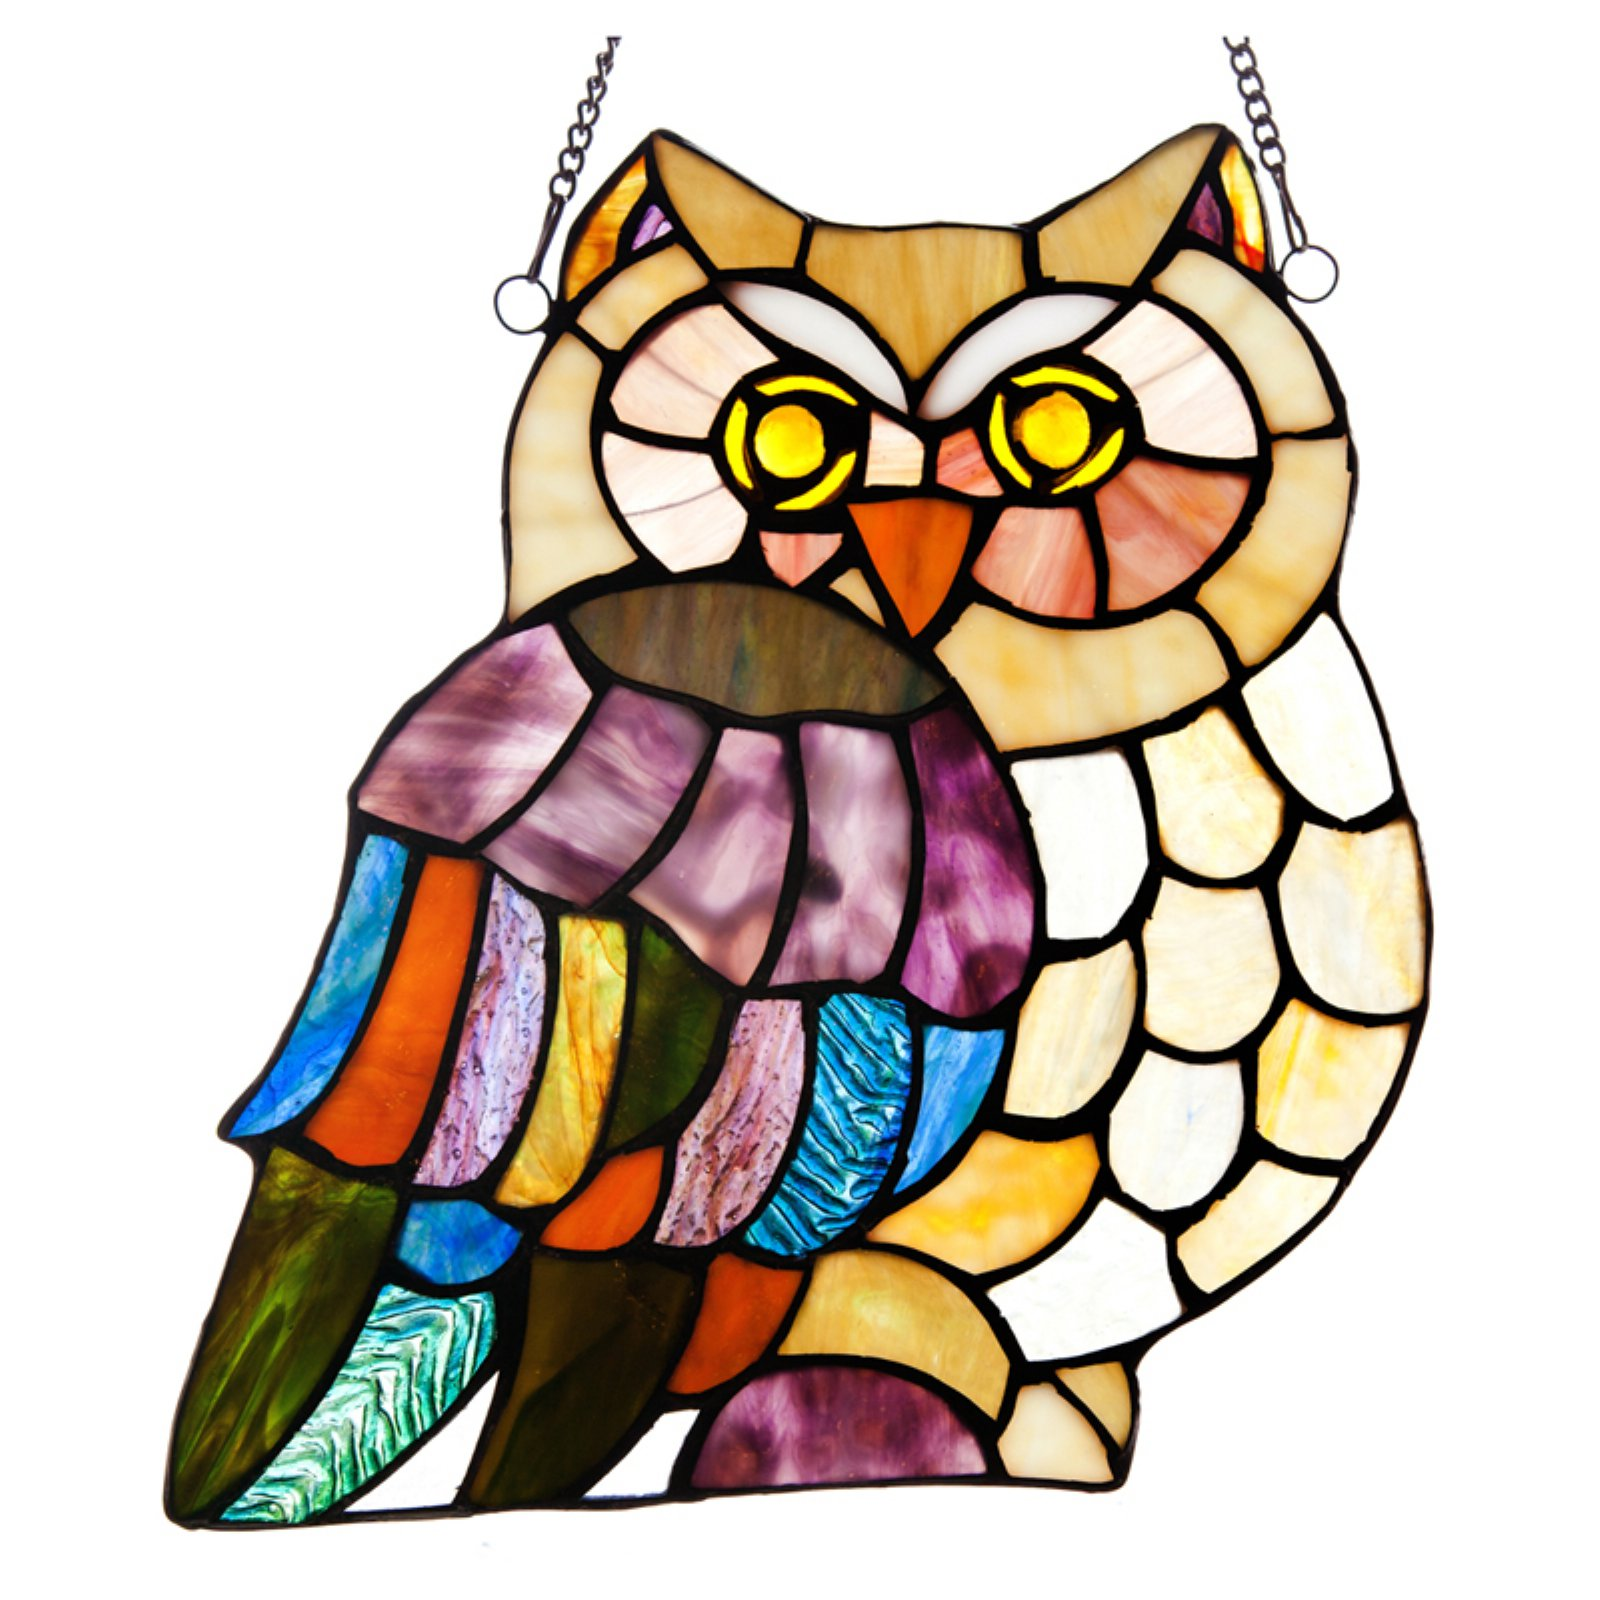 River of Goods Stained Glass Hoots Owl Window Panel